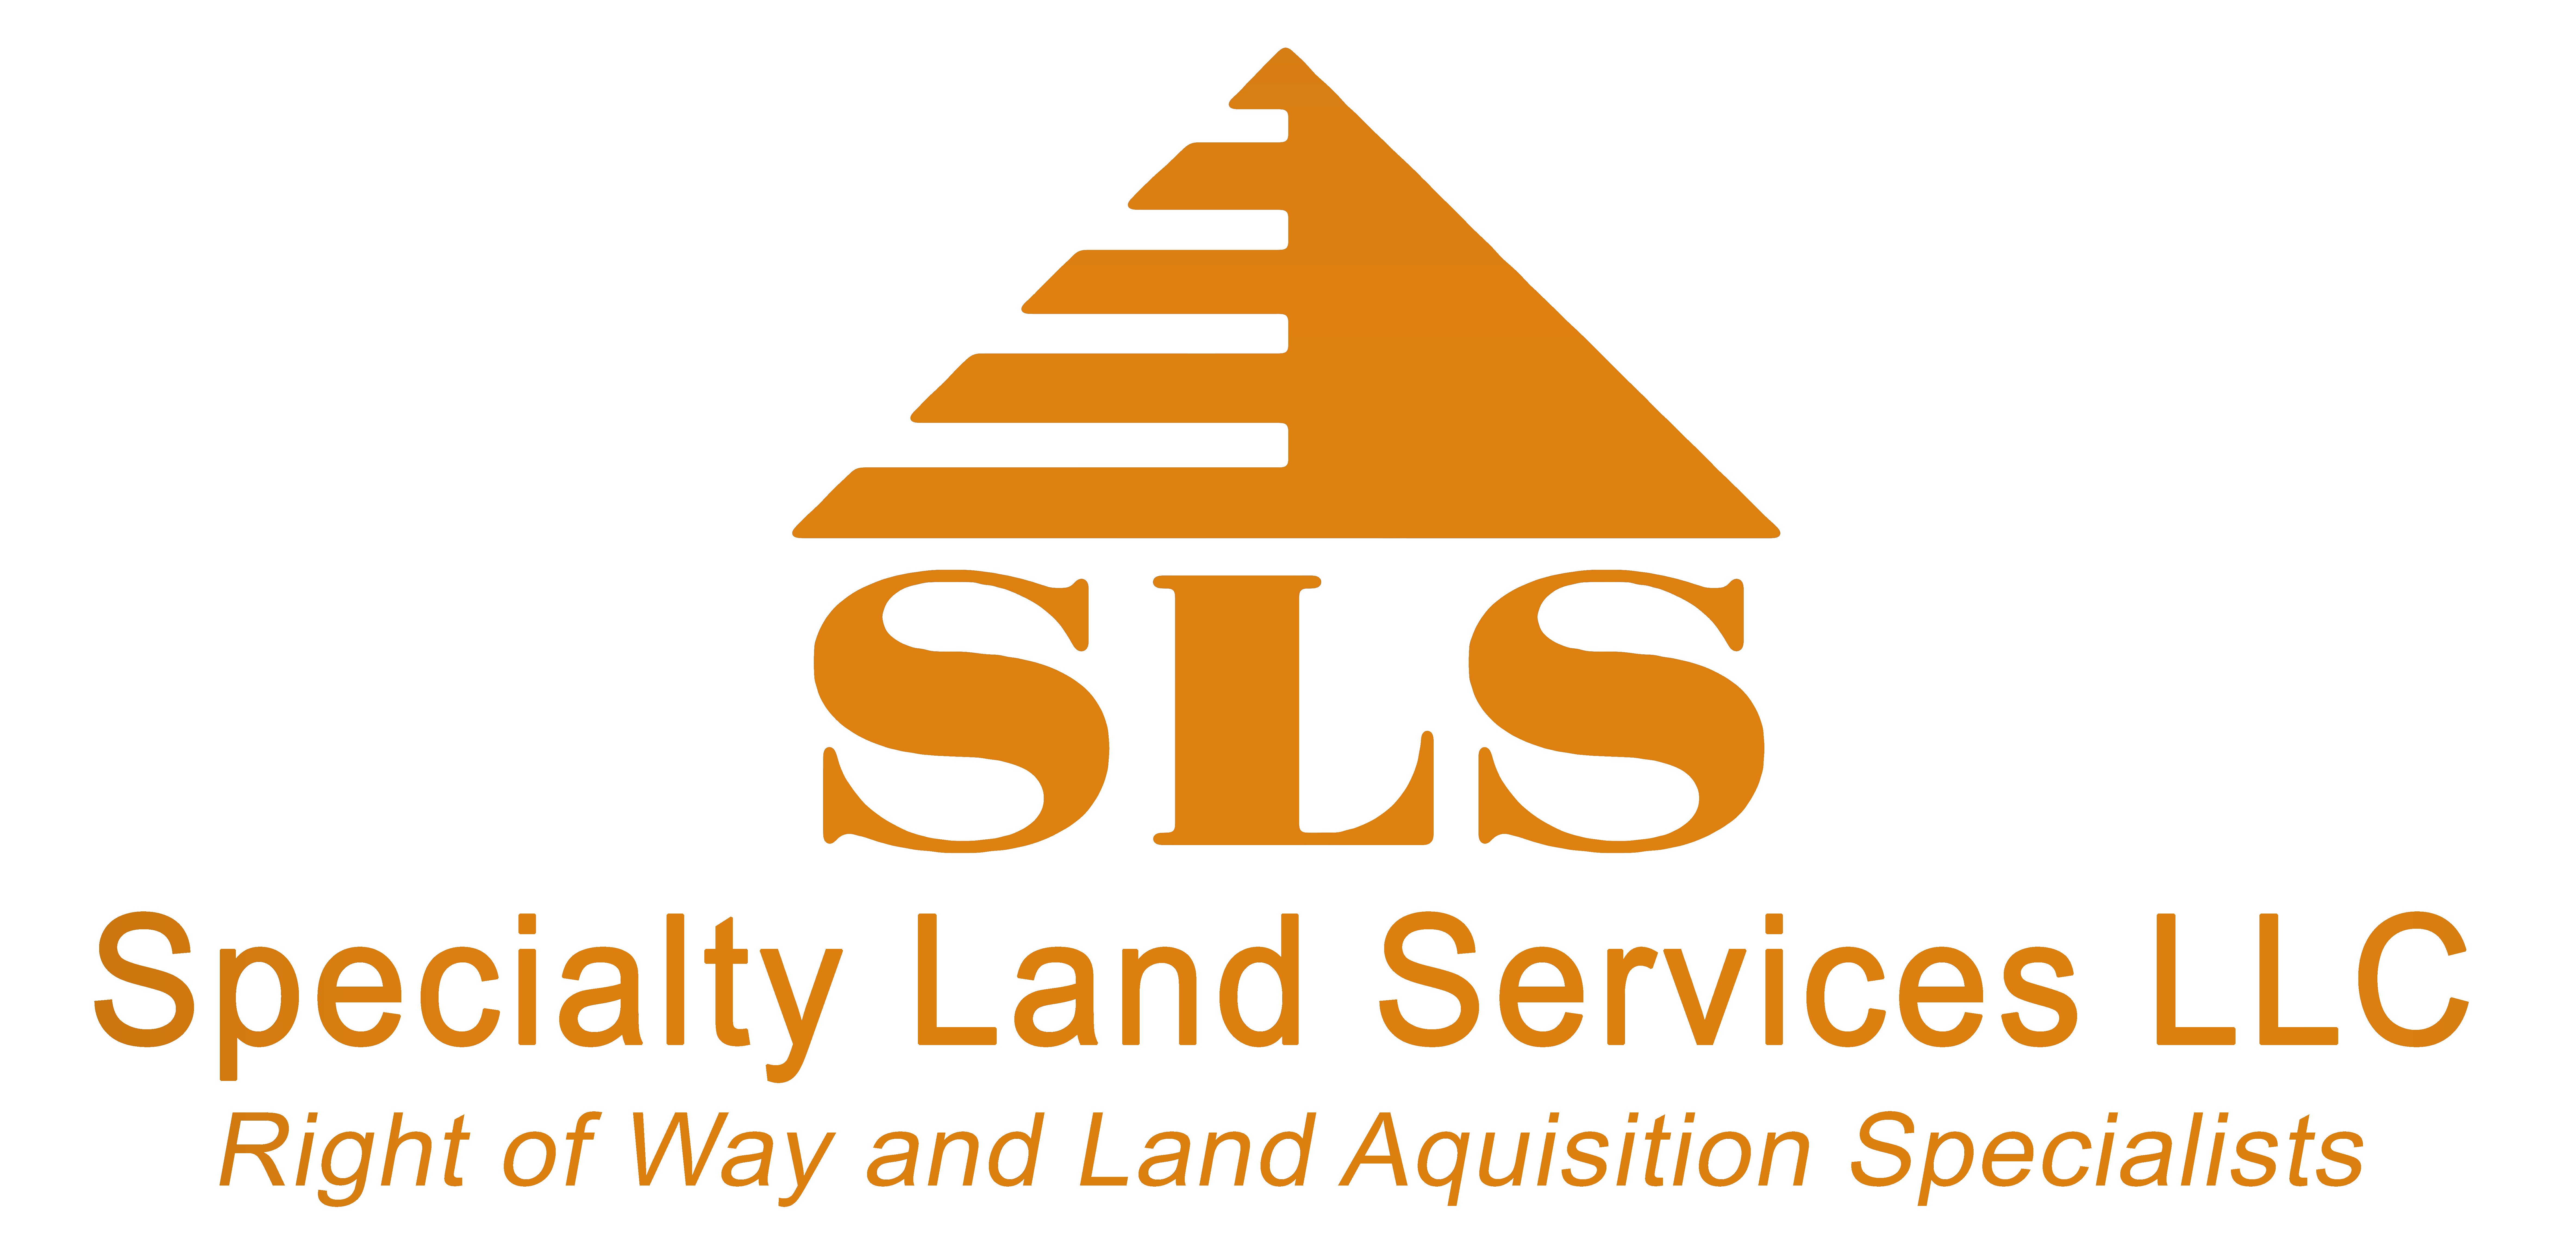 Specialty Land Services, LLC